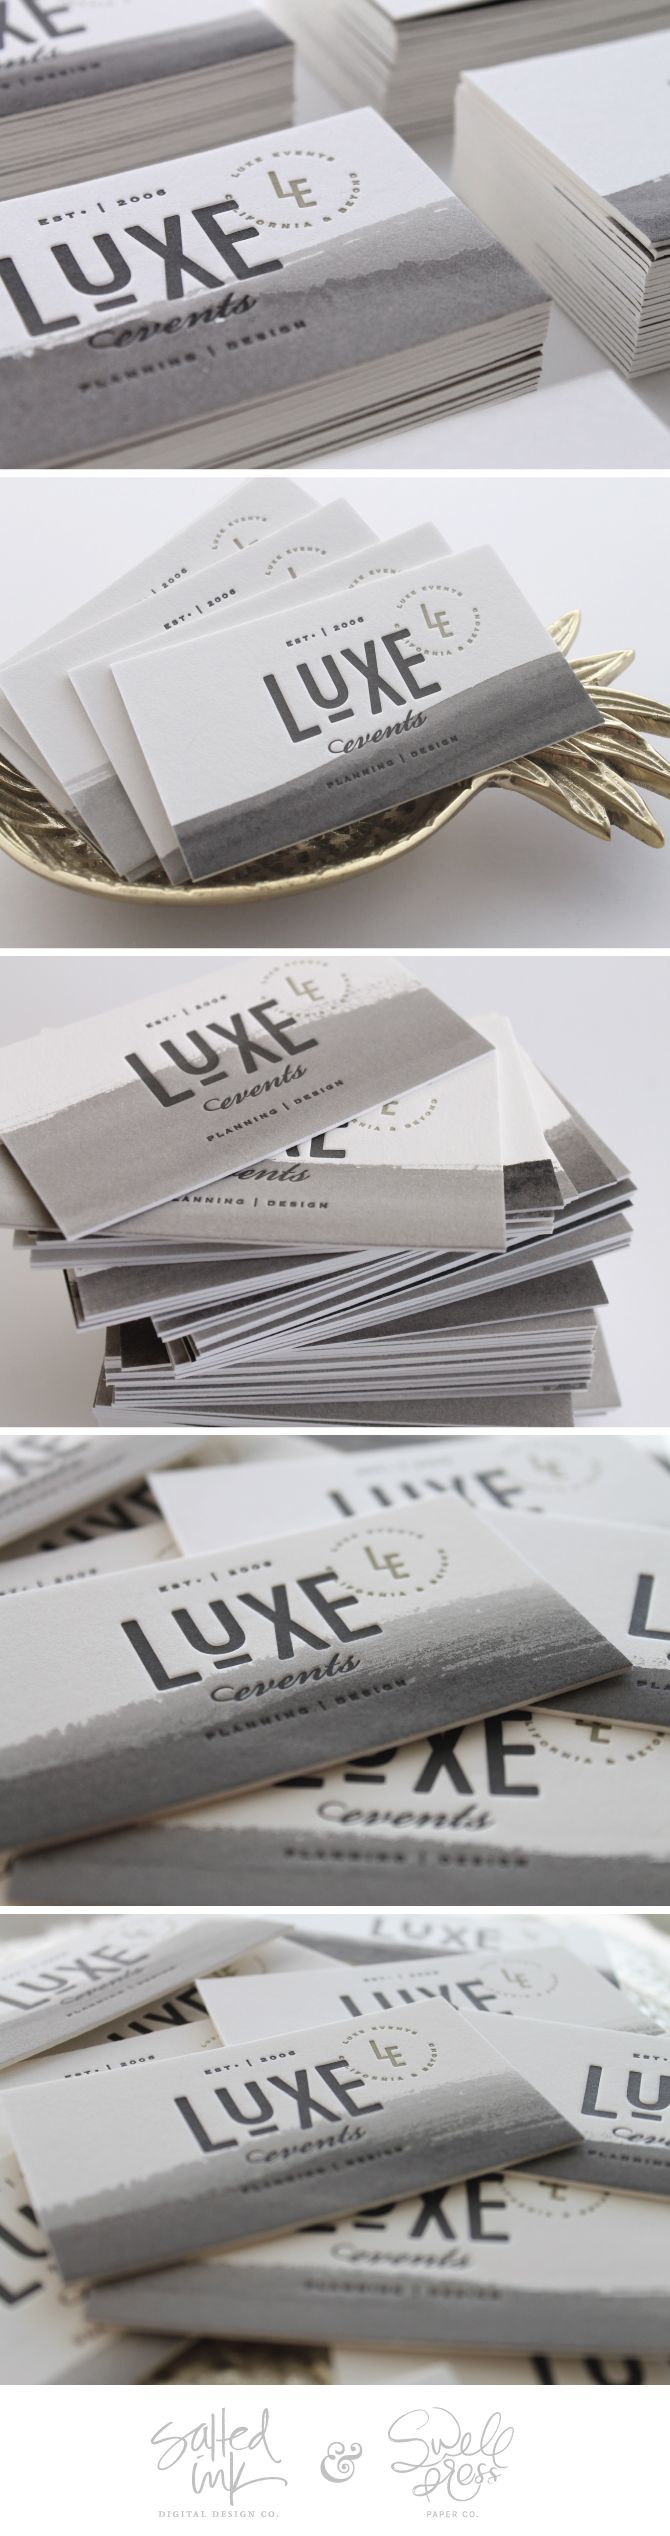 Luxe Events Business Card collaboration with Swell Press Paper...